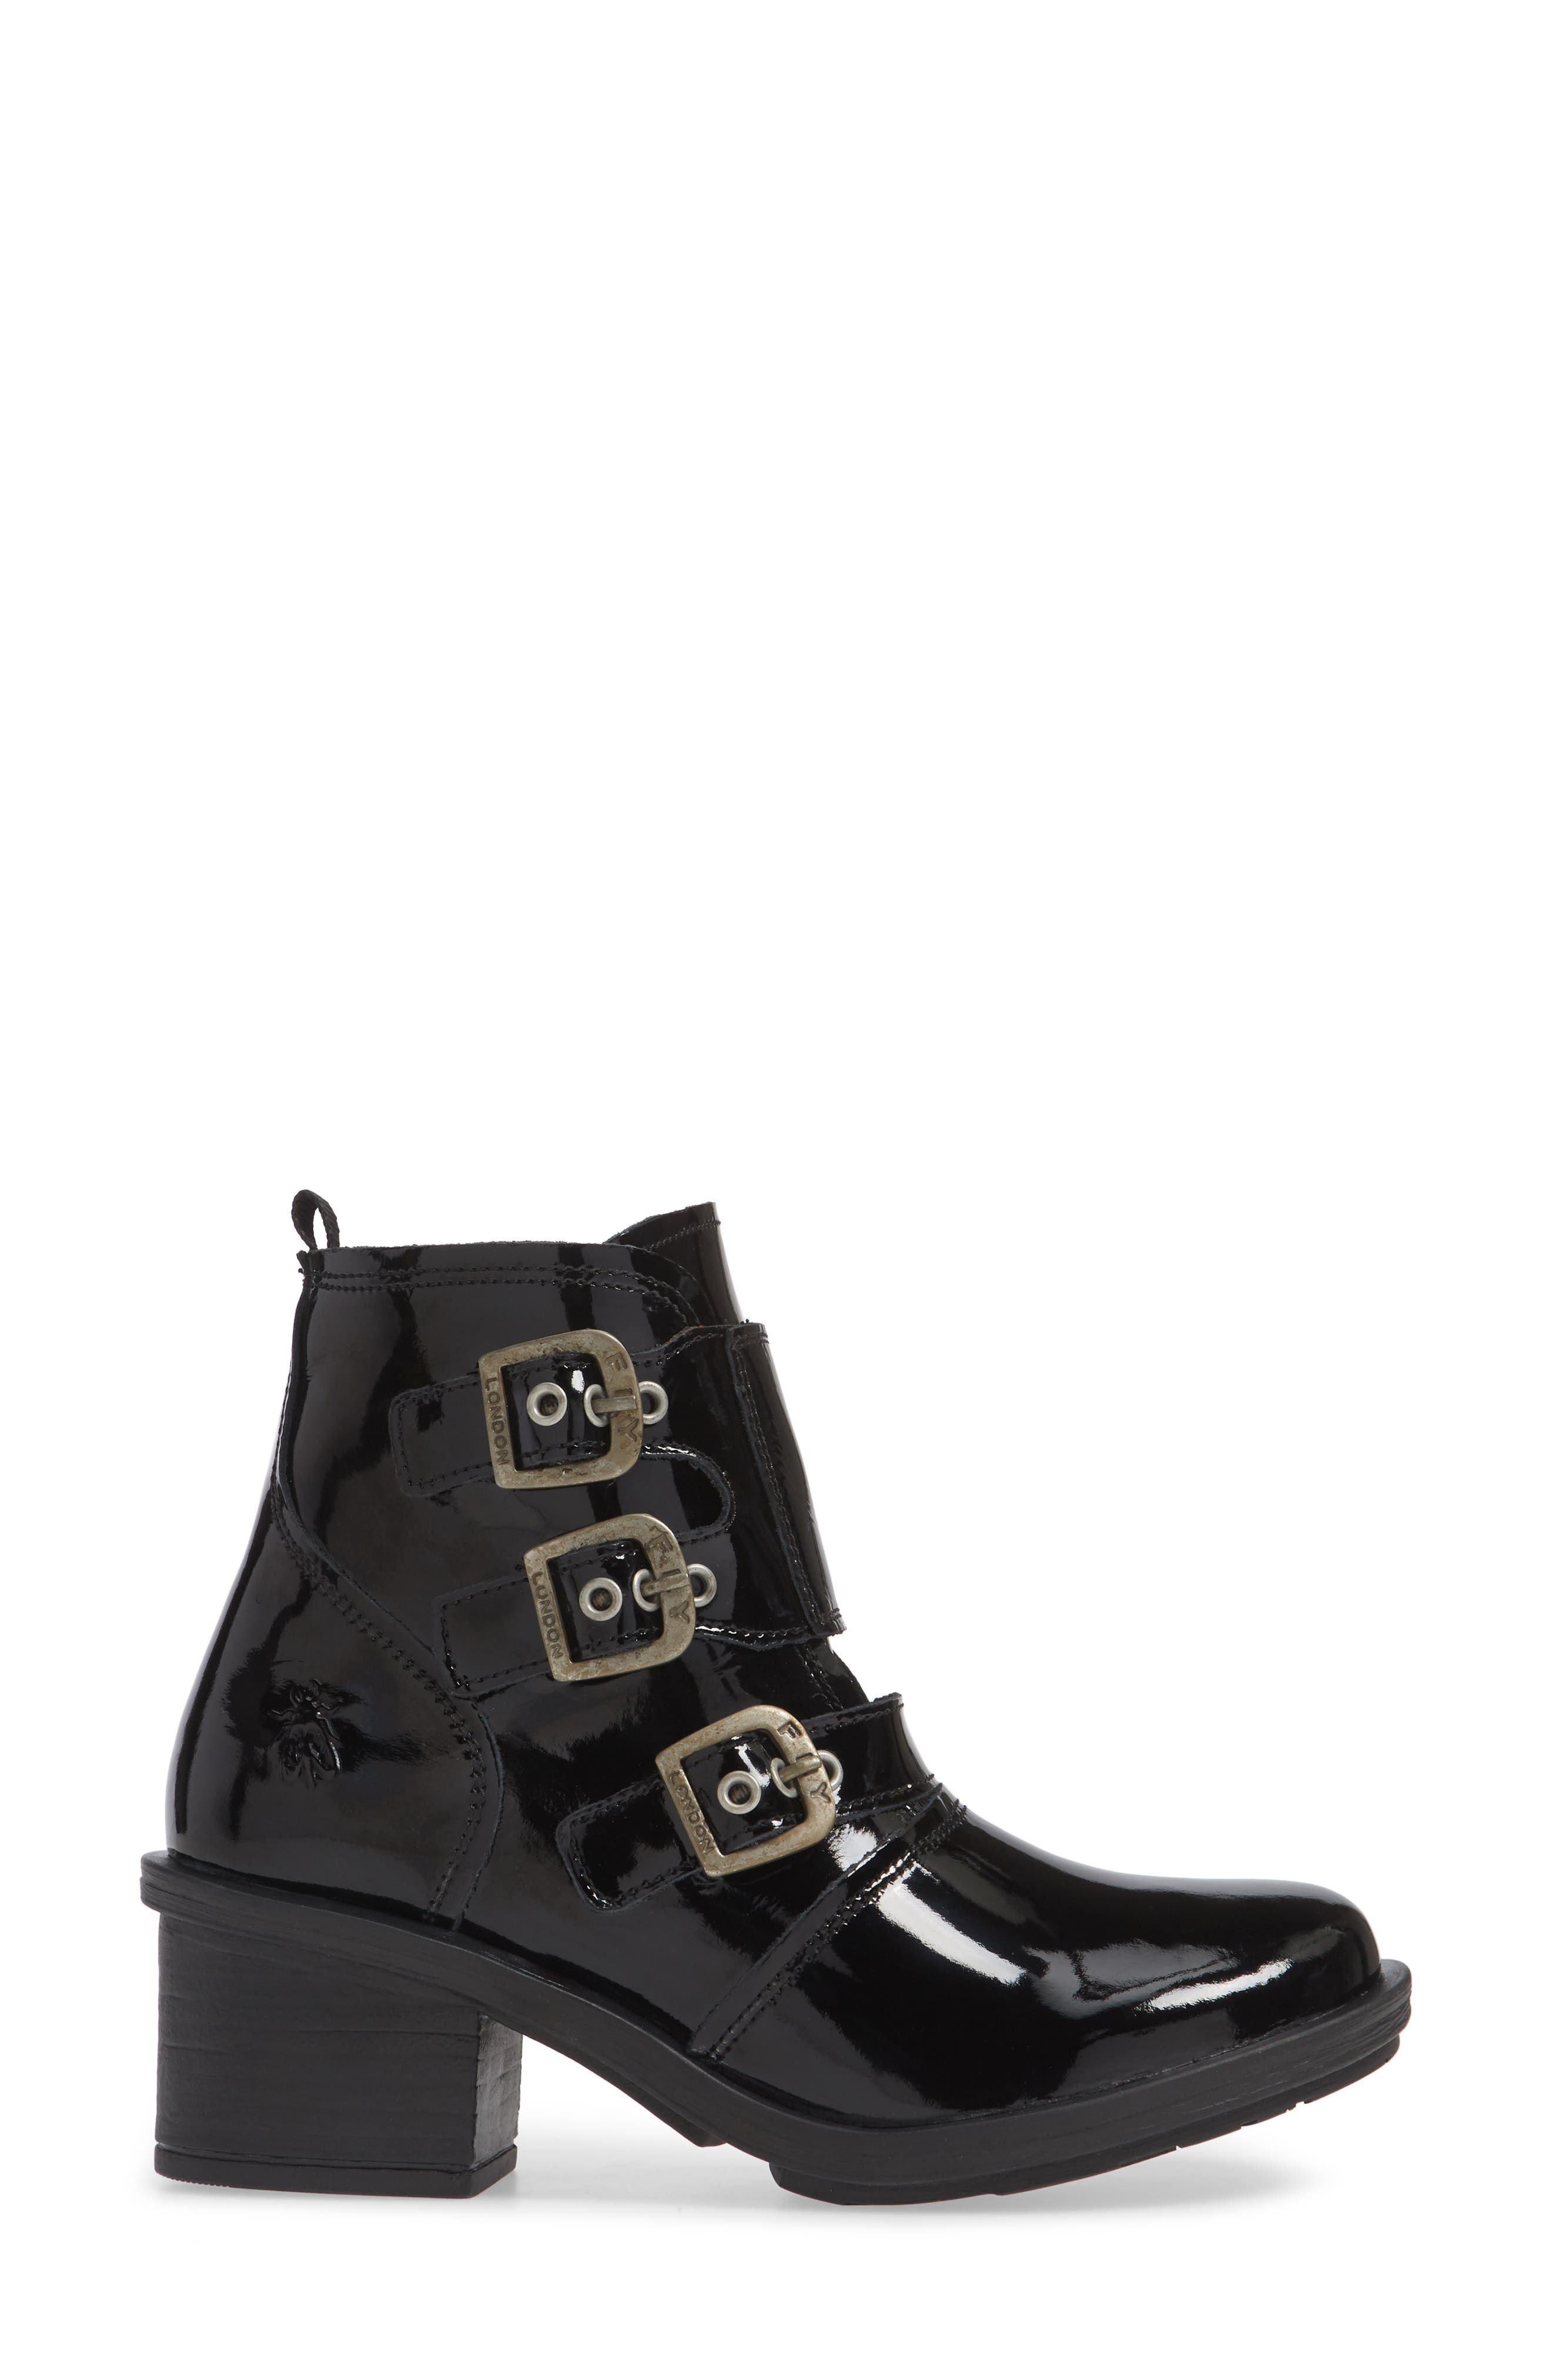 FLY LONDON, Crip Buckle Boot, Alternate thumbnail 3, color, BLACK PATENT LEATHER